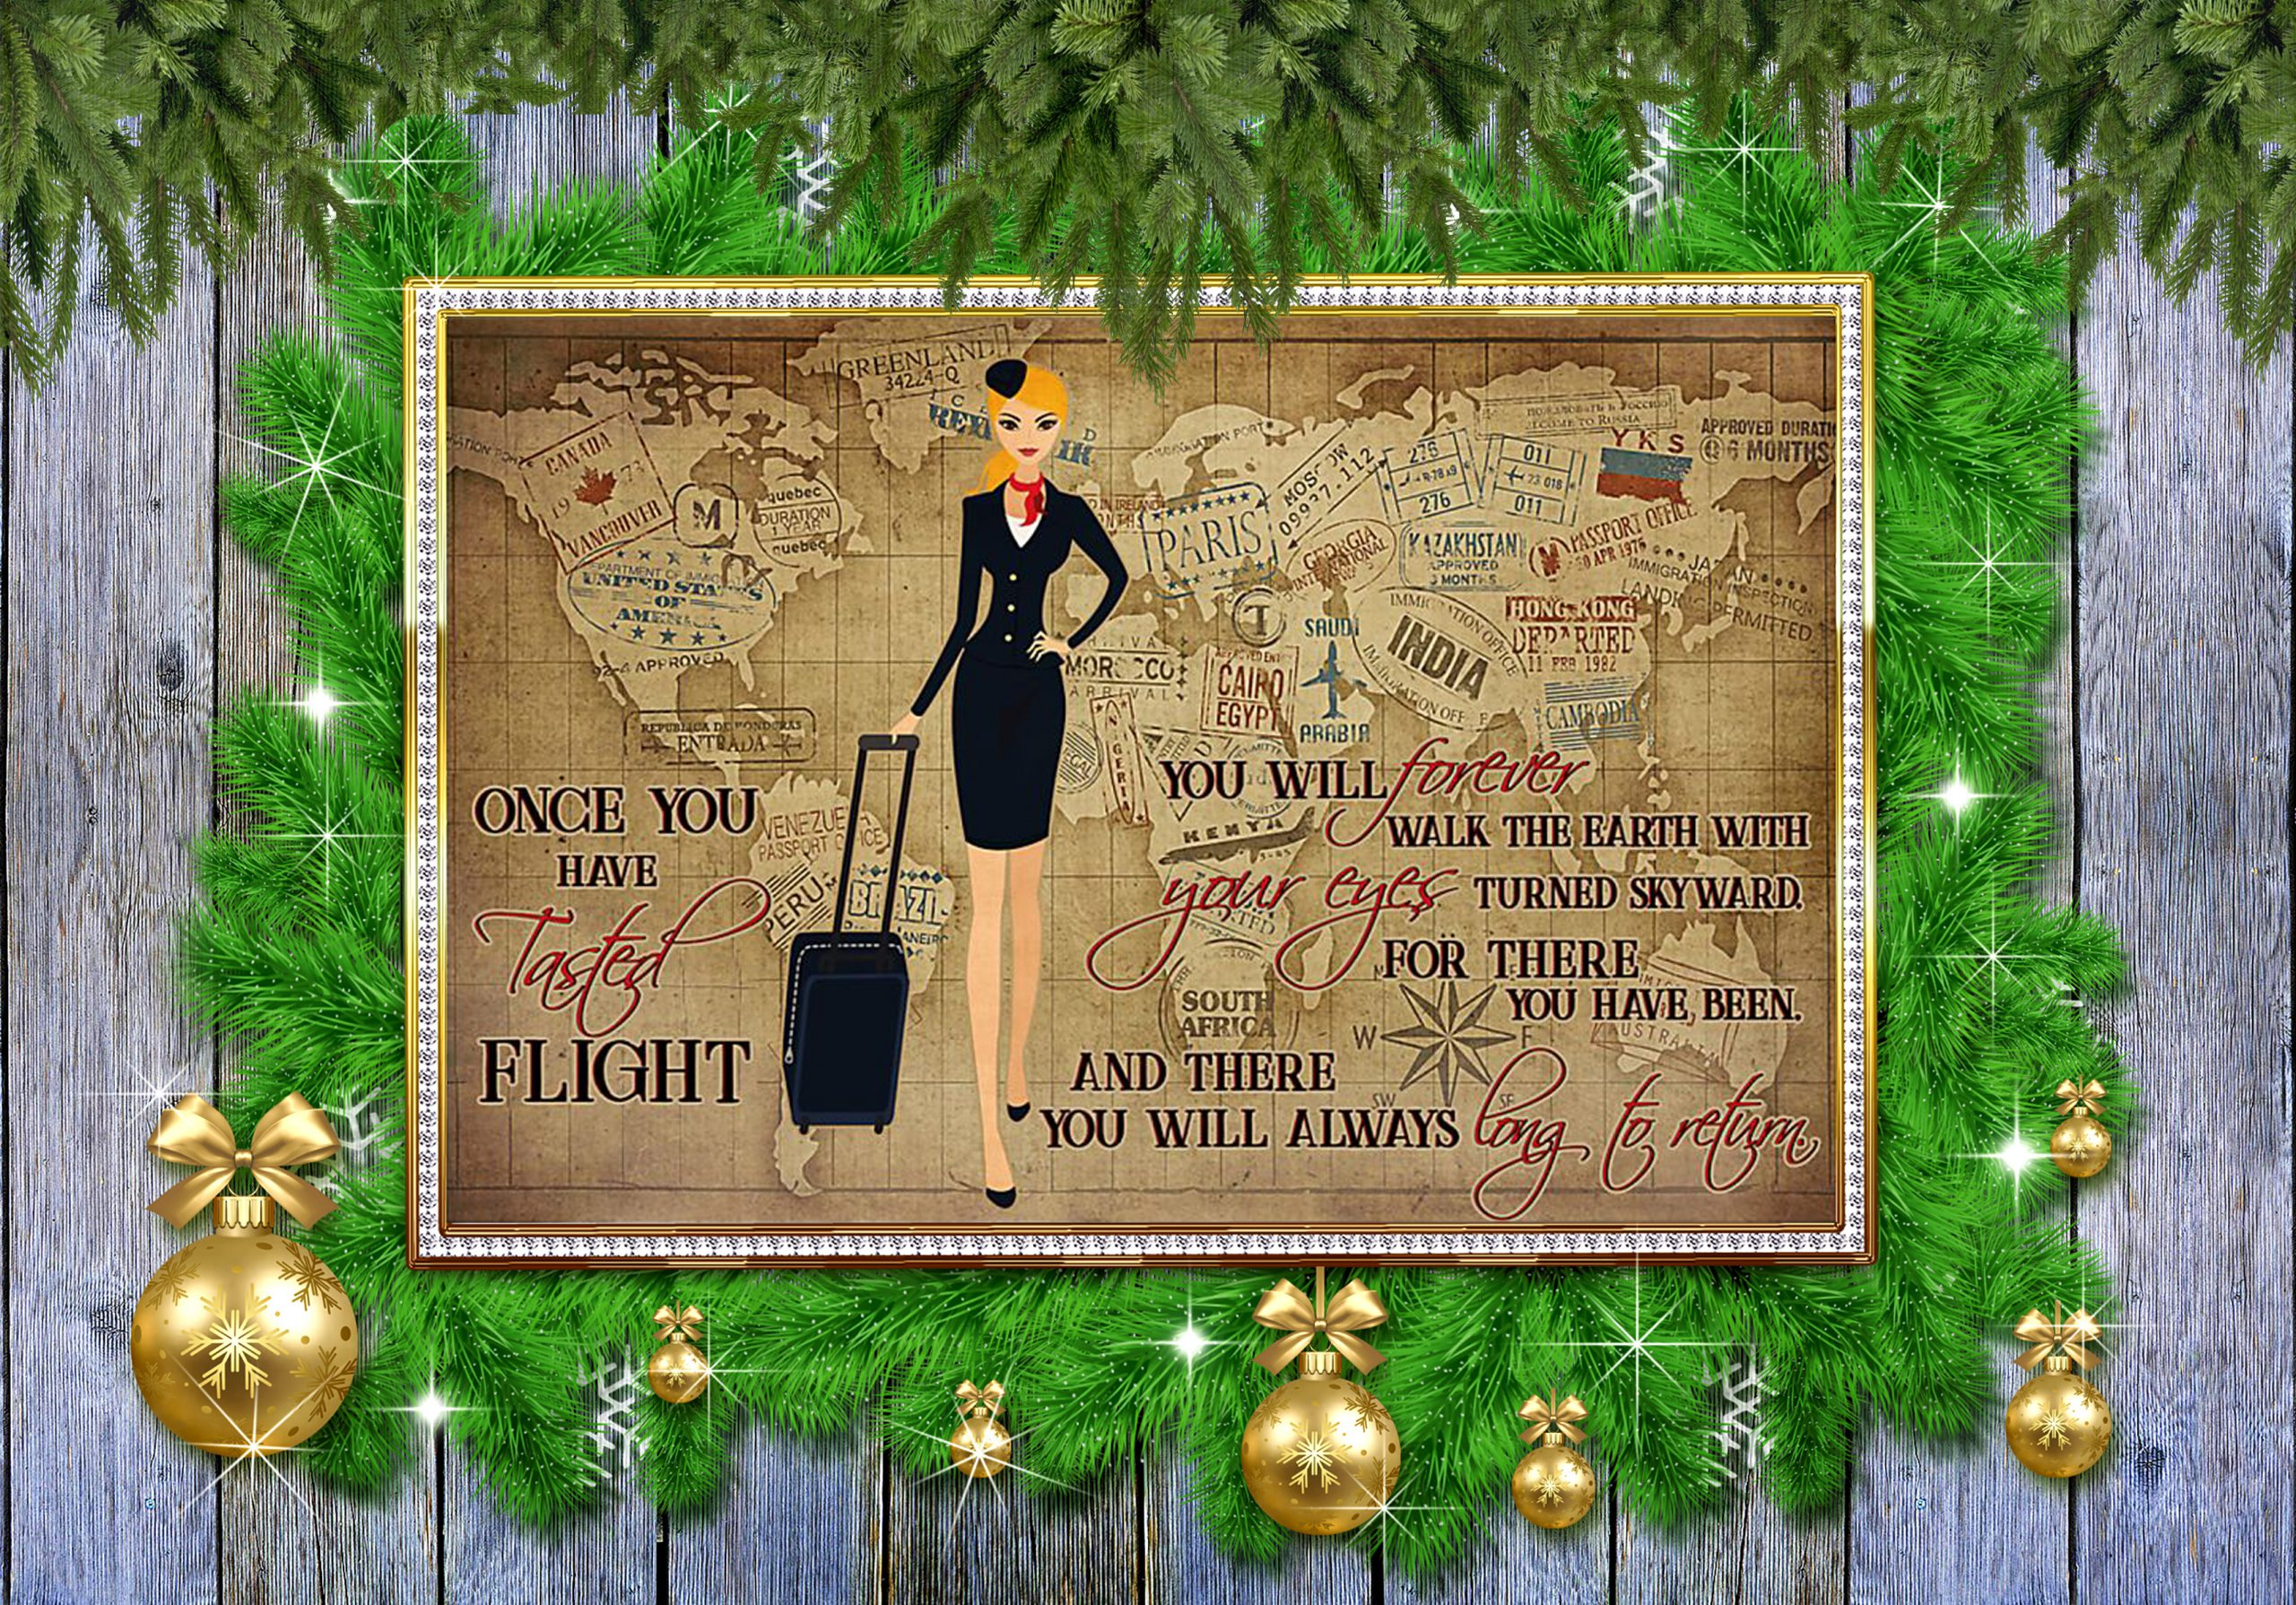 Once you have tasted flight you will forever walk the earth poster 2